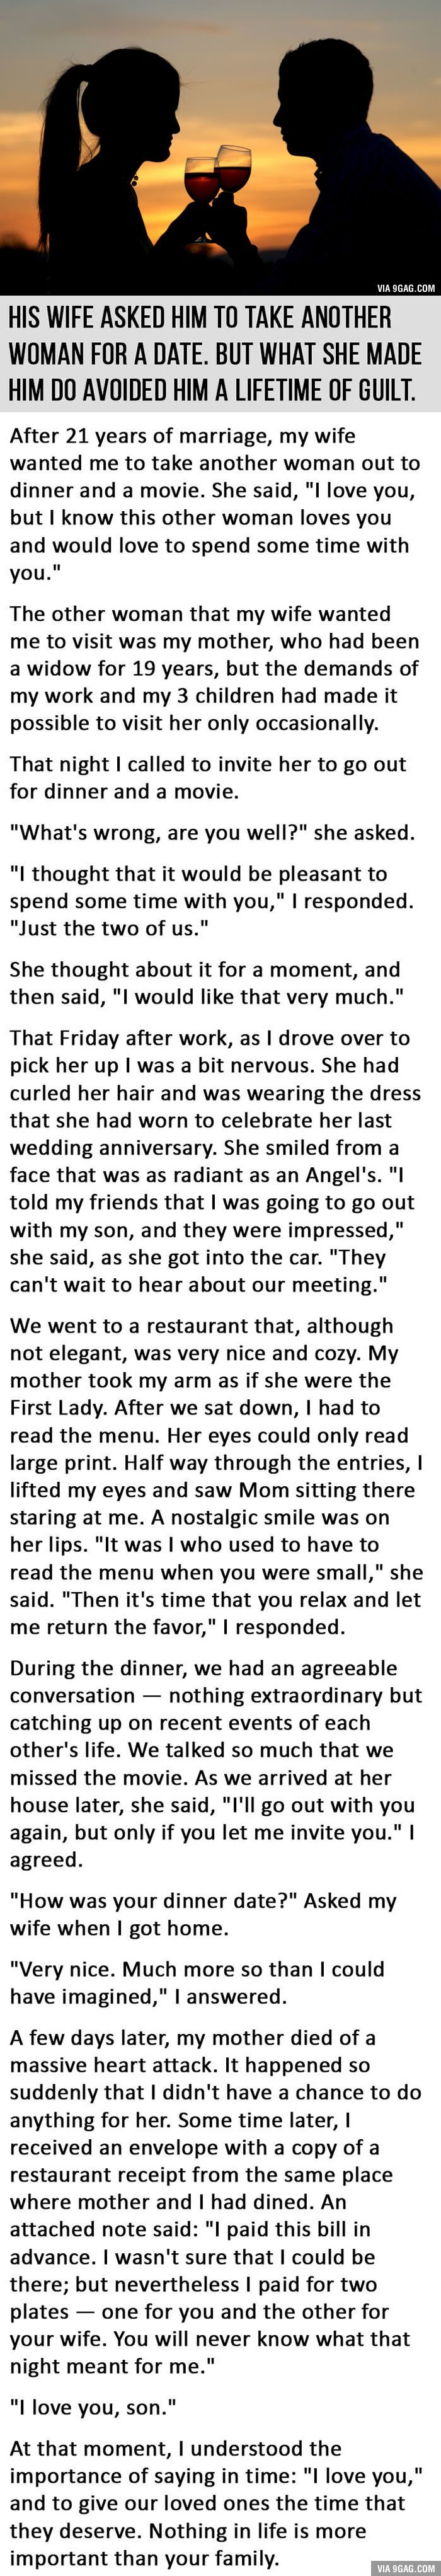 Oh my gosh....how sweet and sad at the same time. This put a pain in my heart and a tear in my eye.